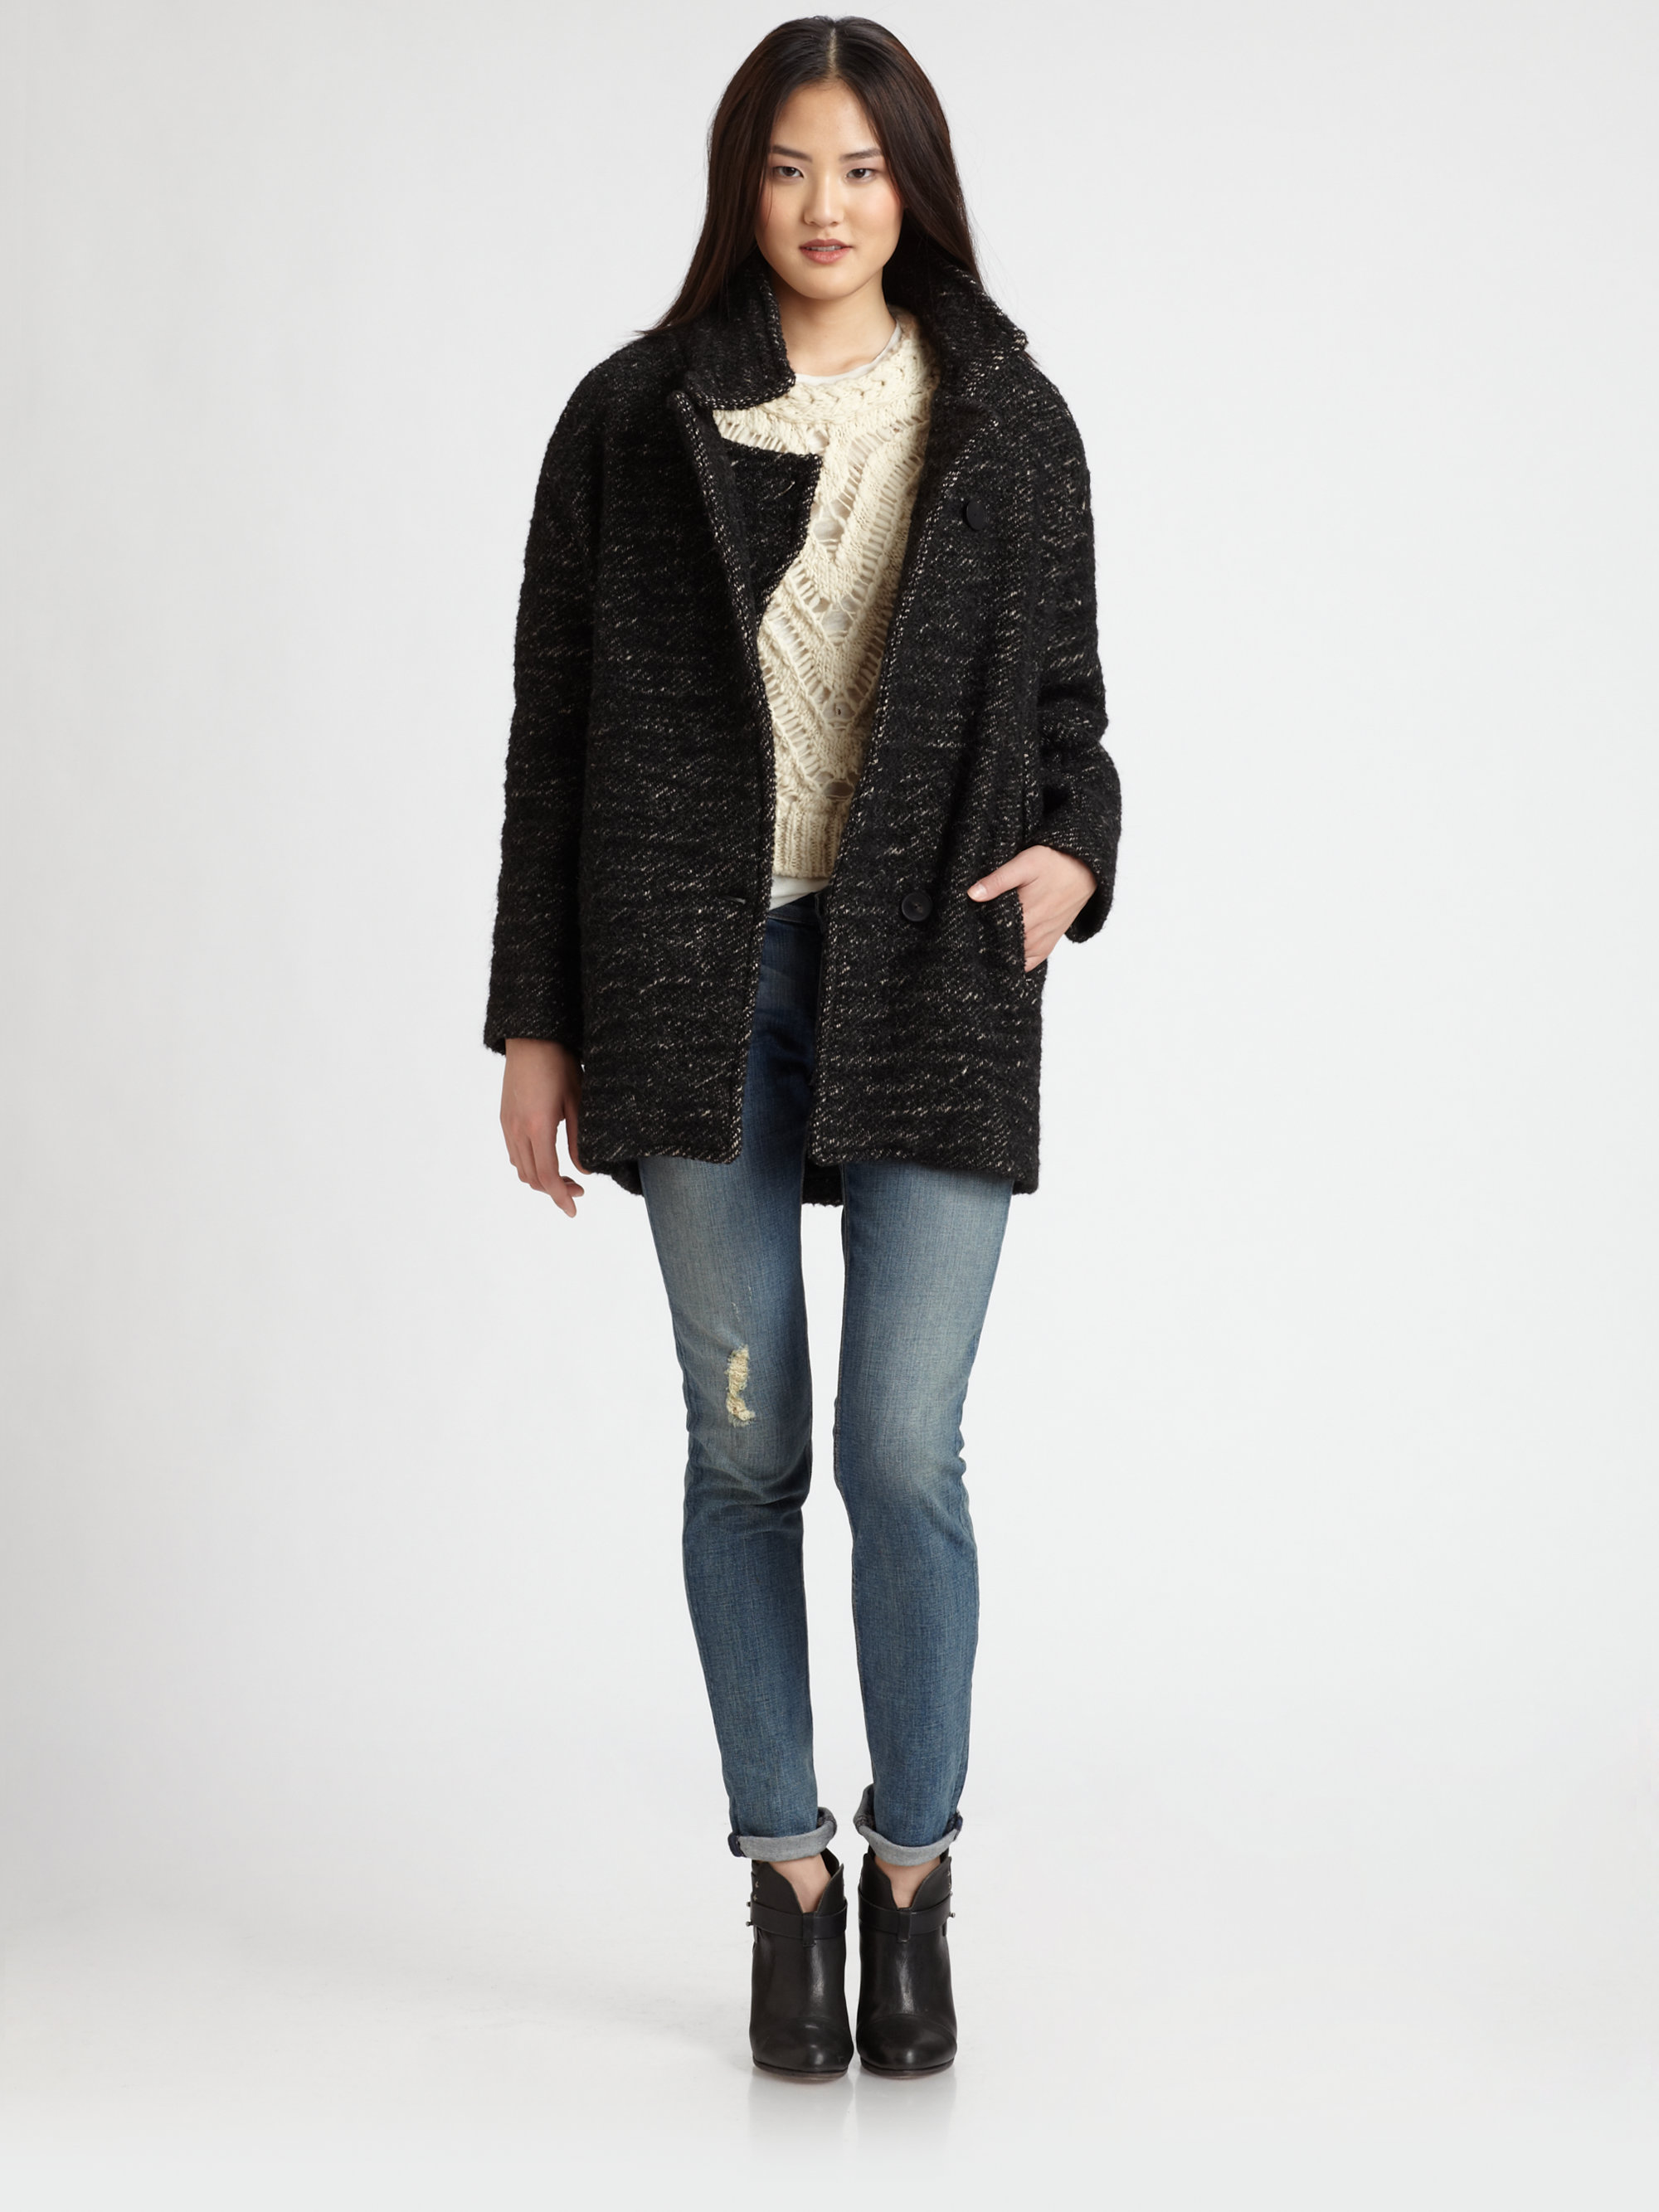 Iro Lanila Oversized Tweed Coat in Black | Lyst